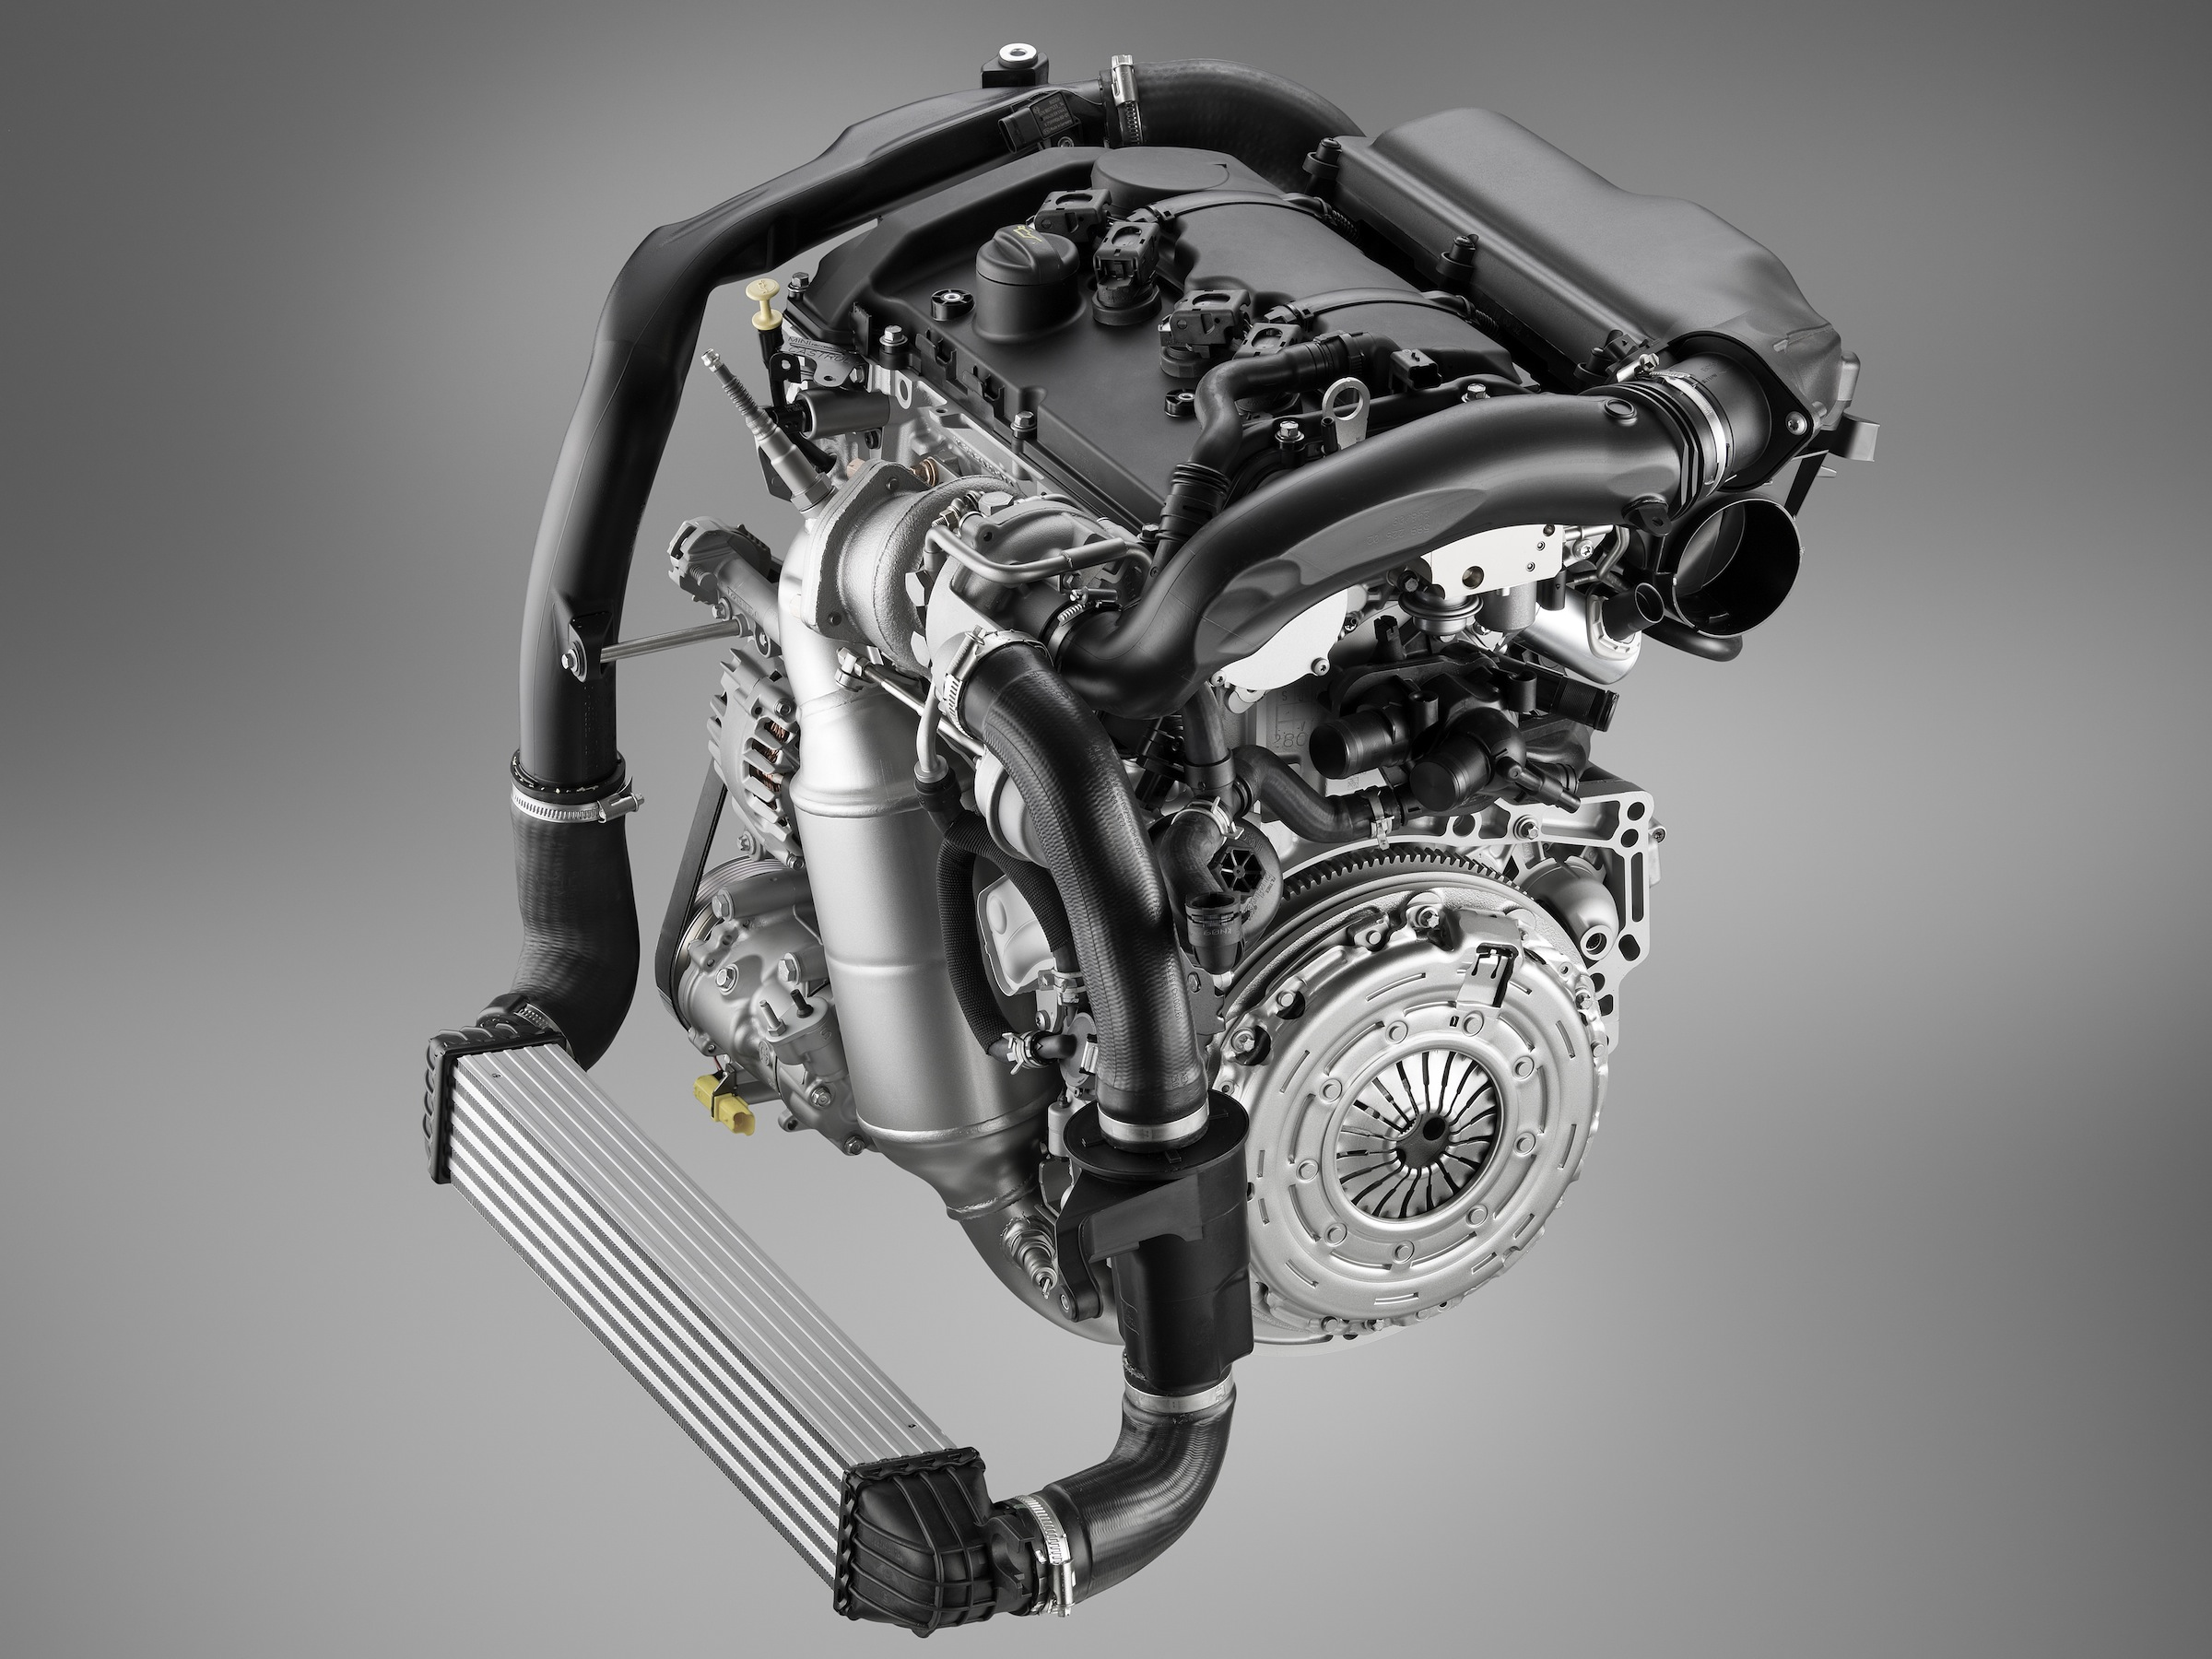 Bmw N20 And N13 N18 Engines Win 2013 International Engine